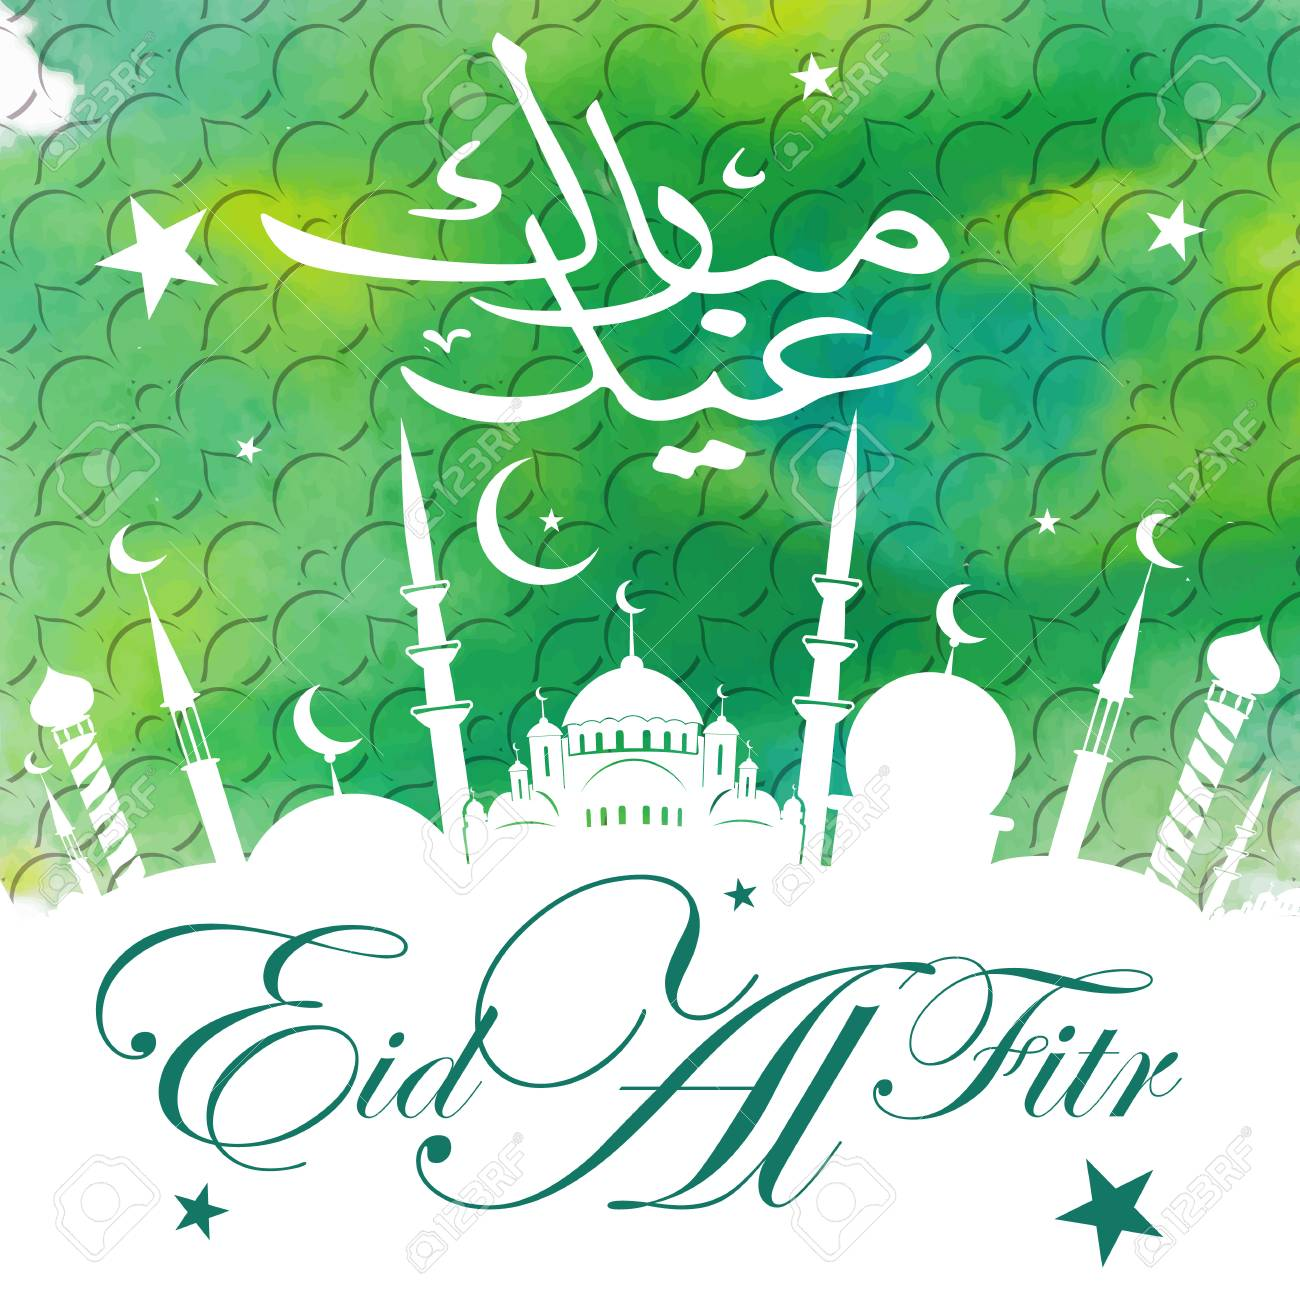 Simple Happy Eid Al-Fitr Feast - 77678346-calligraphy-of-arabic-text-eid-al-fitr-feast-of-breaking-the-fast-holiday-greeting-card-in-retro-sty  Pic_48775 .jpg